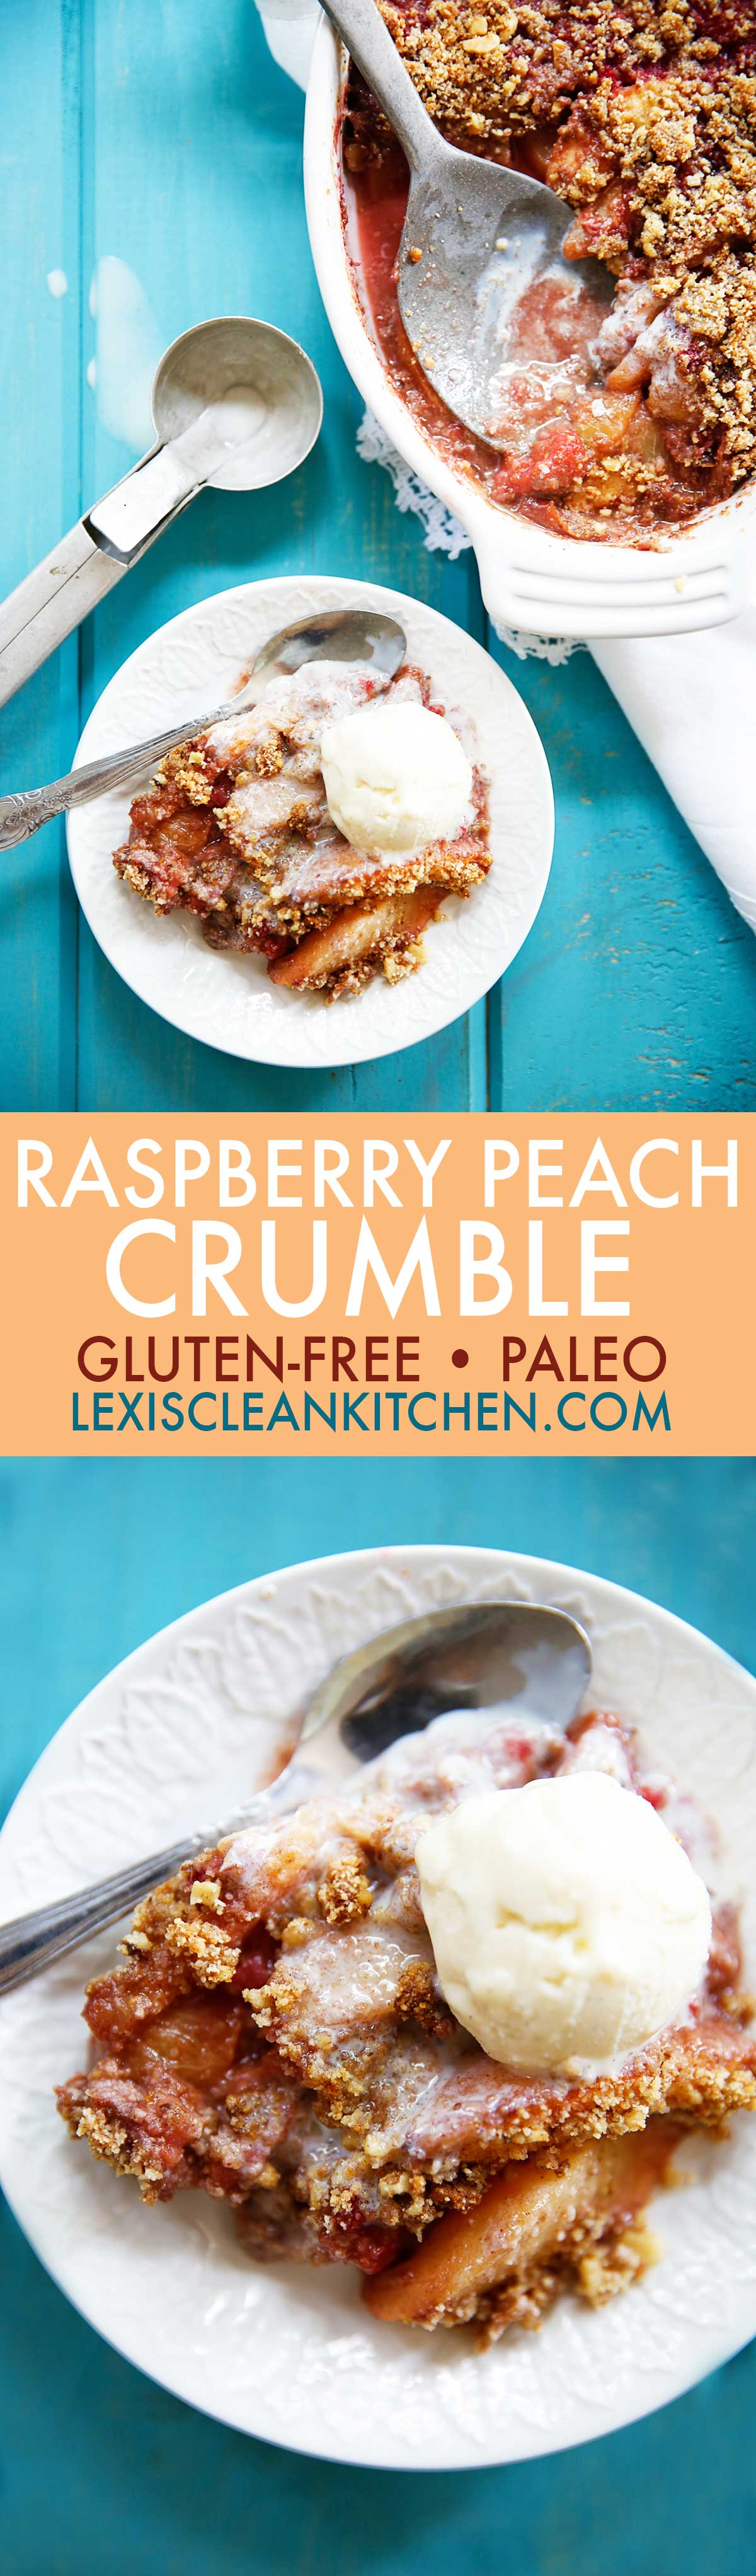 Raspberry Peach Crumble {Dairy-free, egg-free, paleo-friendly, grain-free, gluten-free} | Lexi's Clean Kitchen